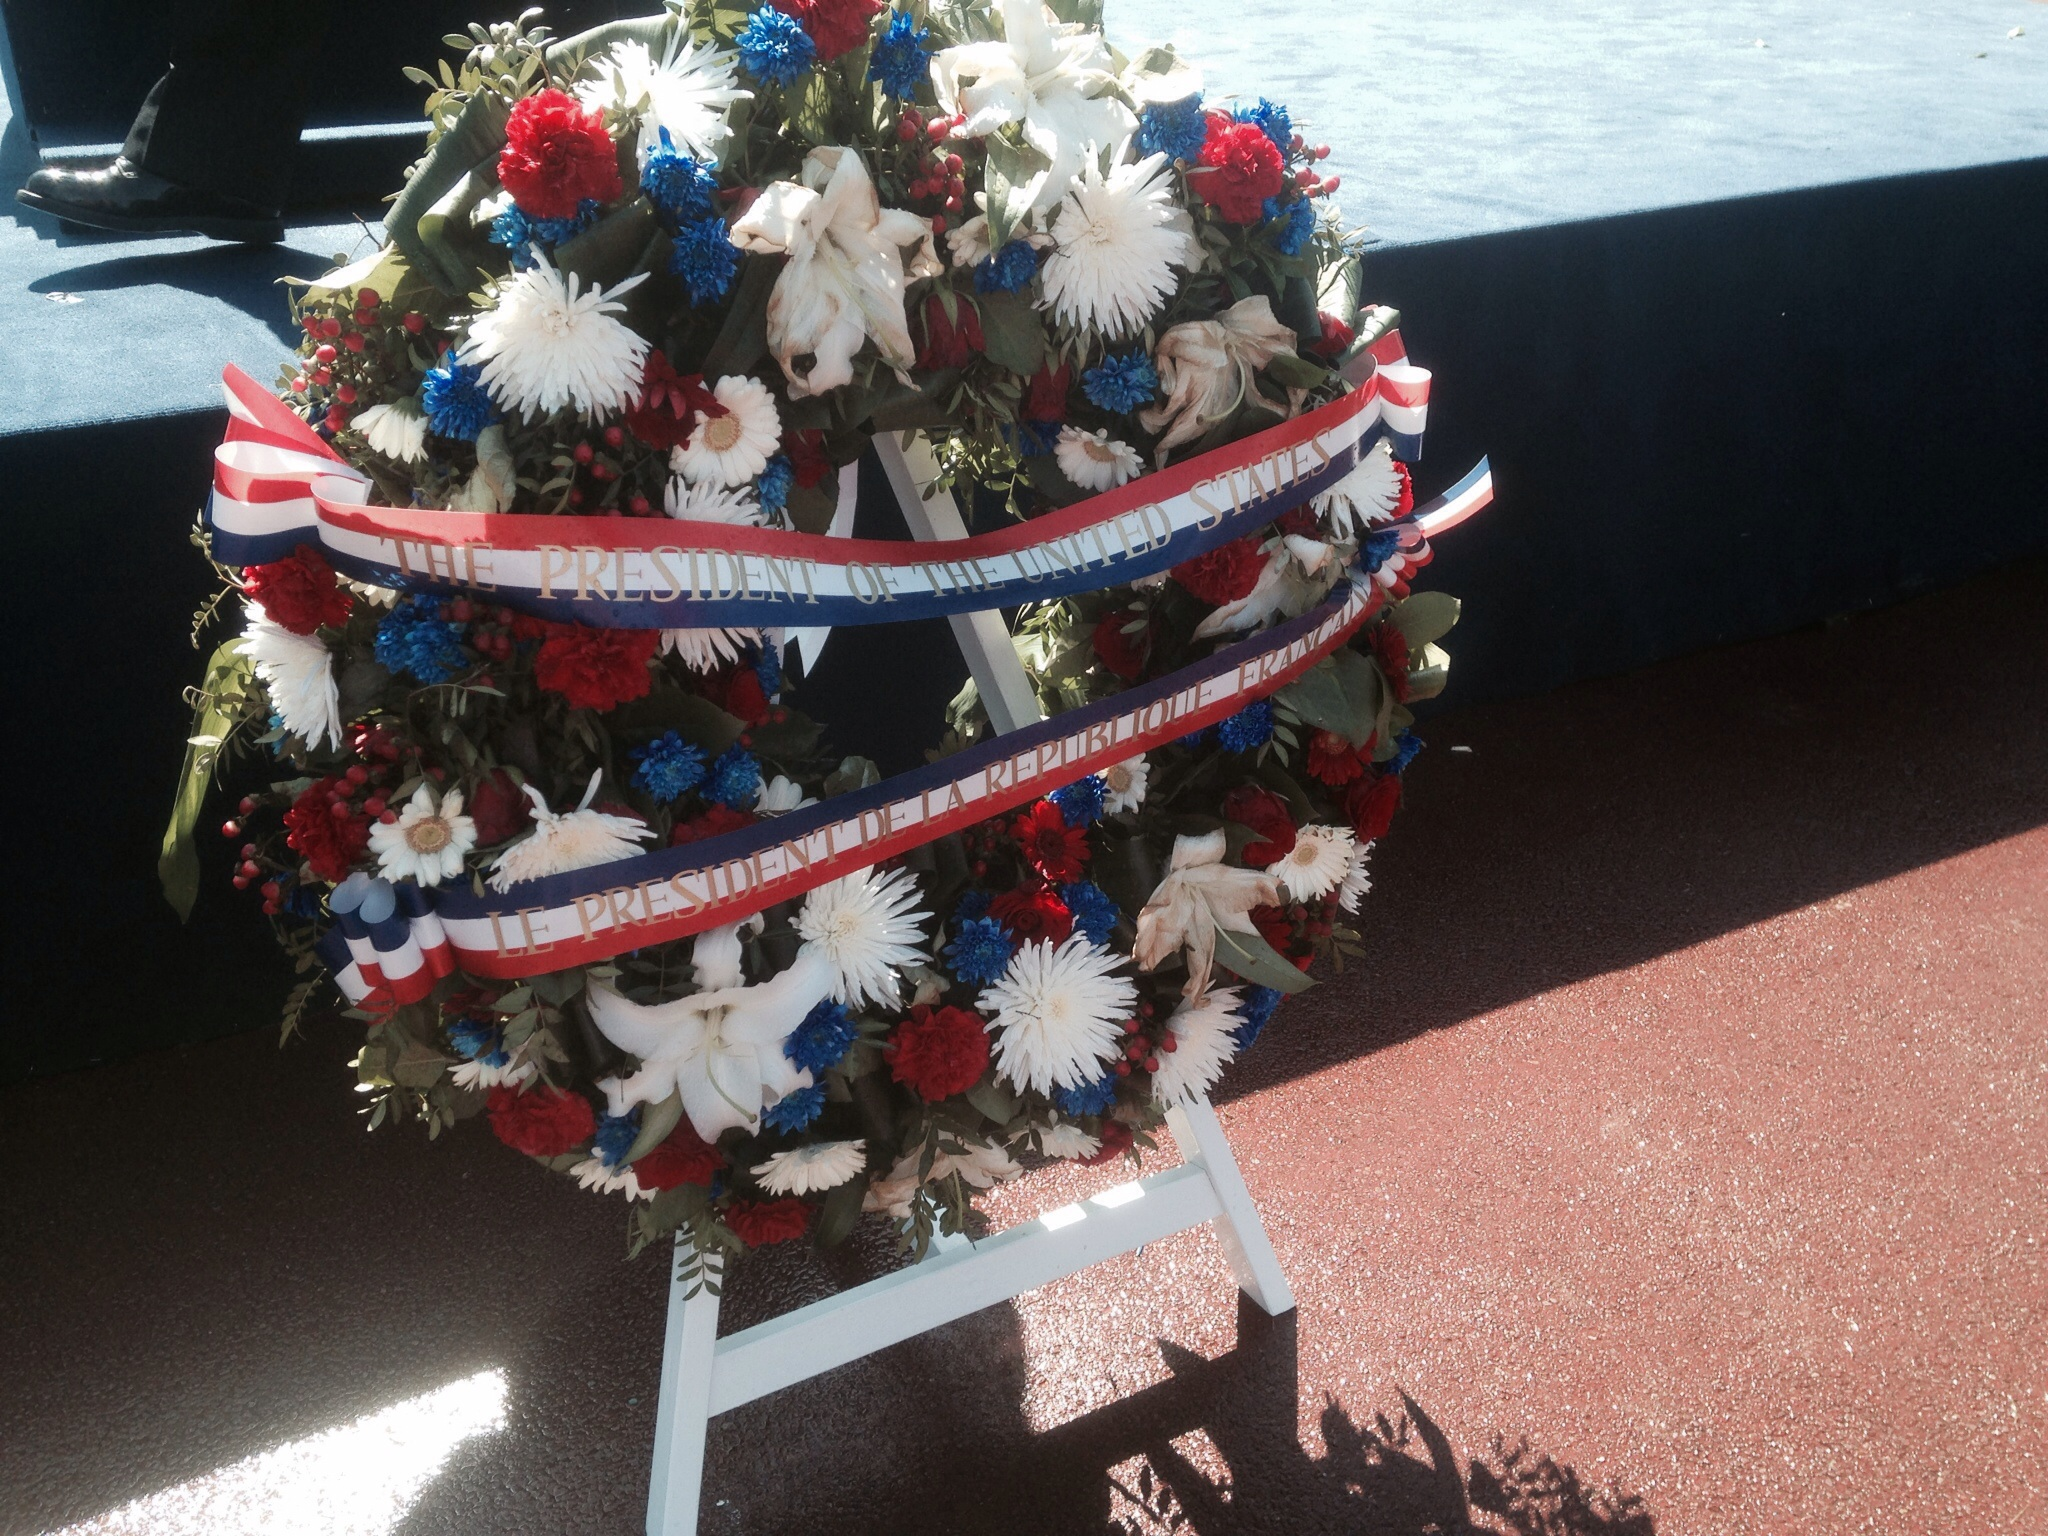 Presidential wreath, acknowledging both US and French Republic officials